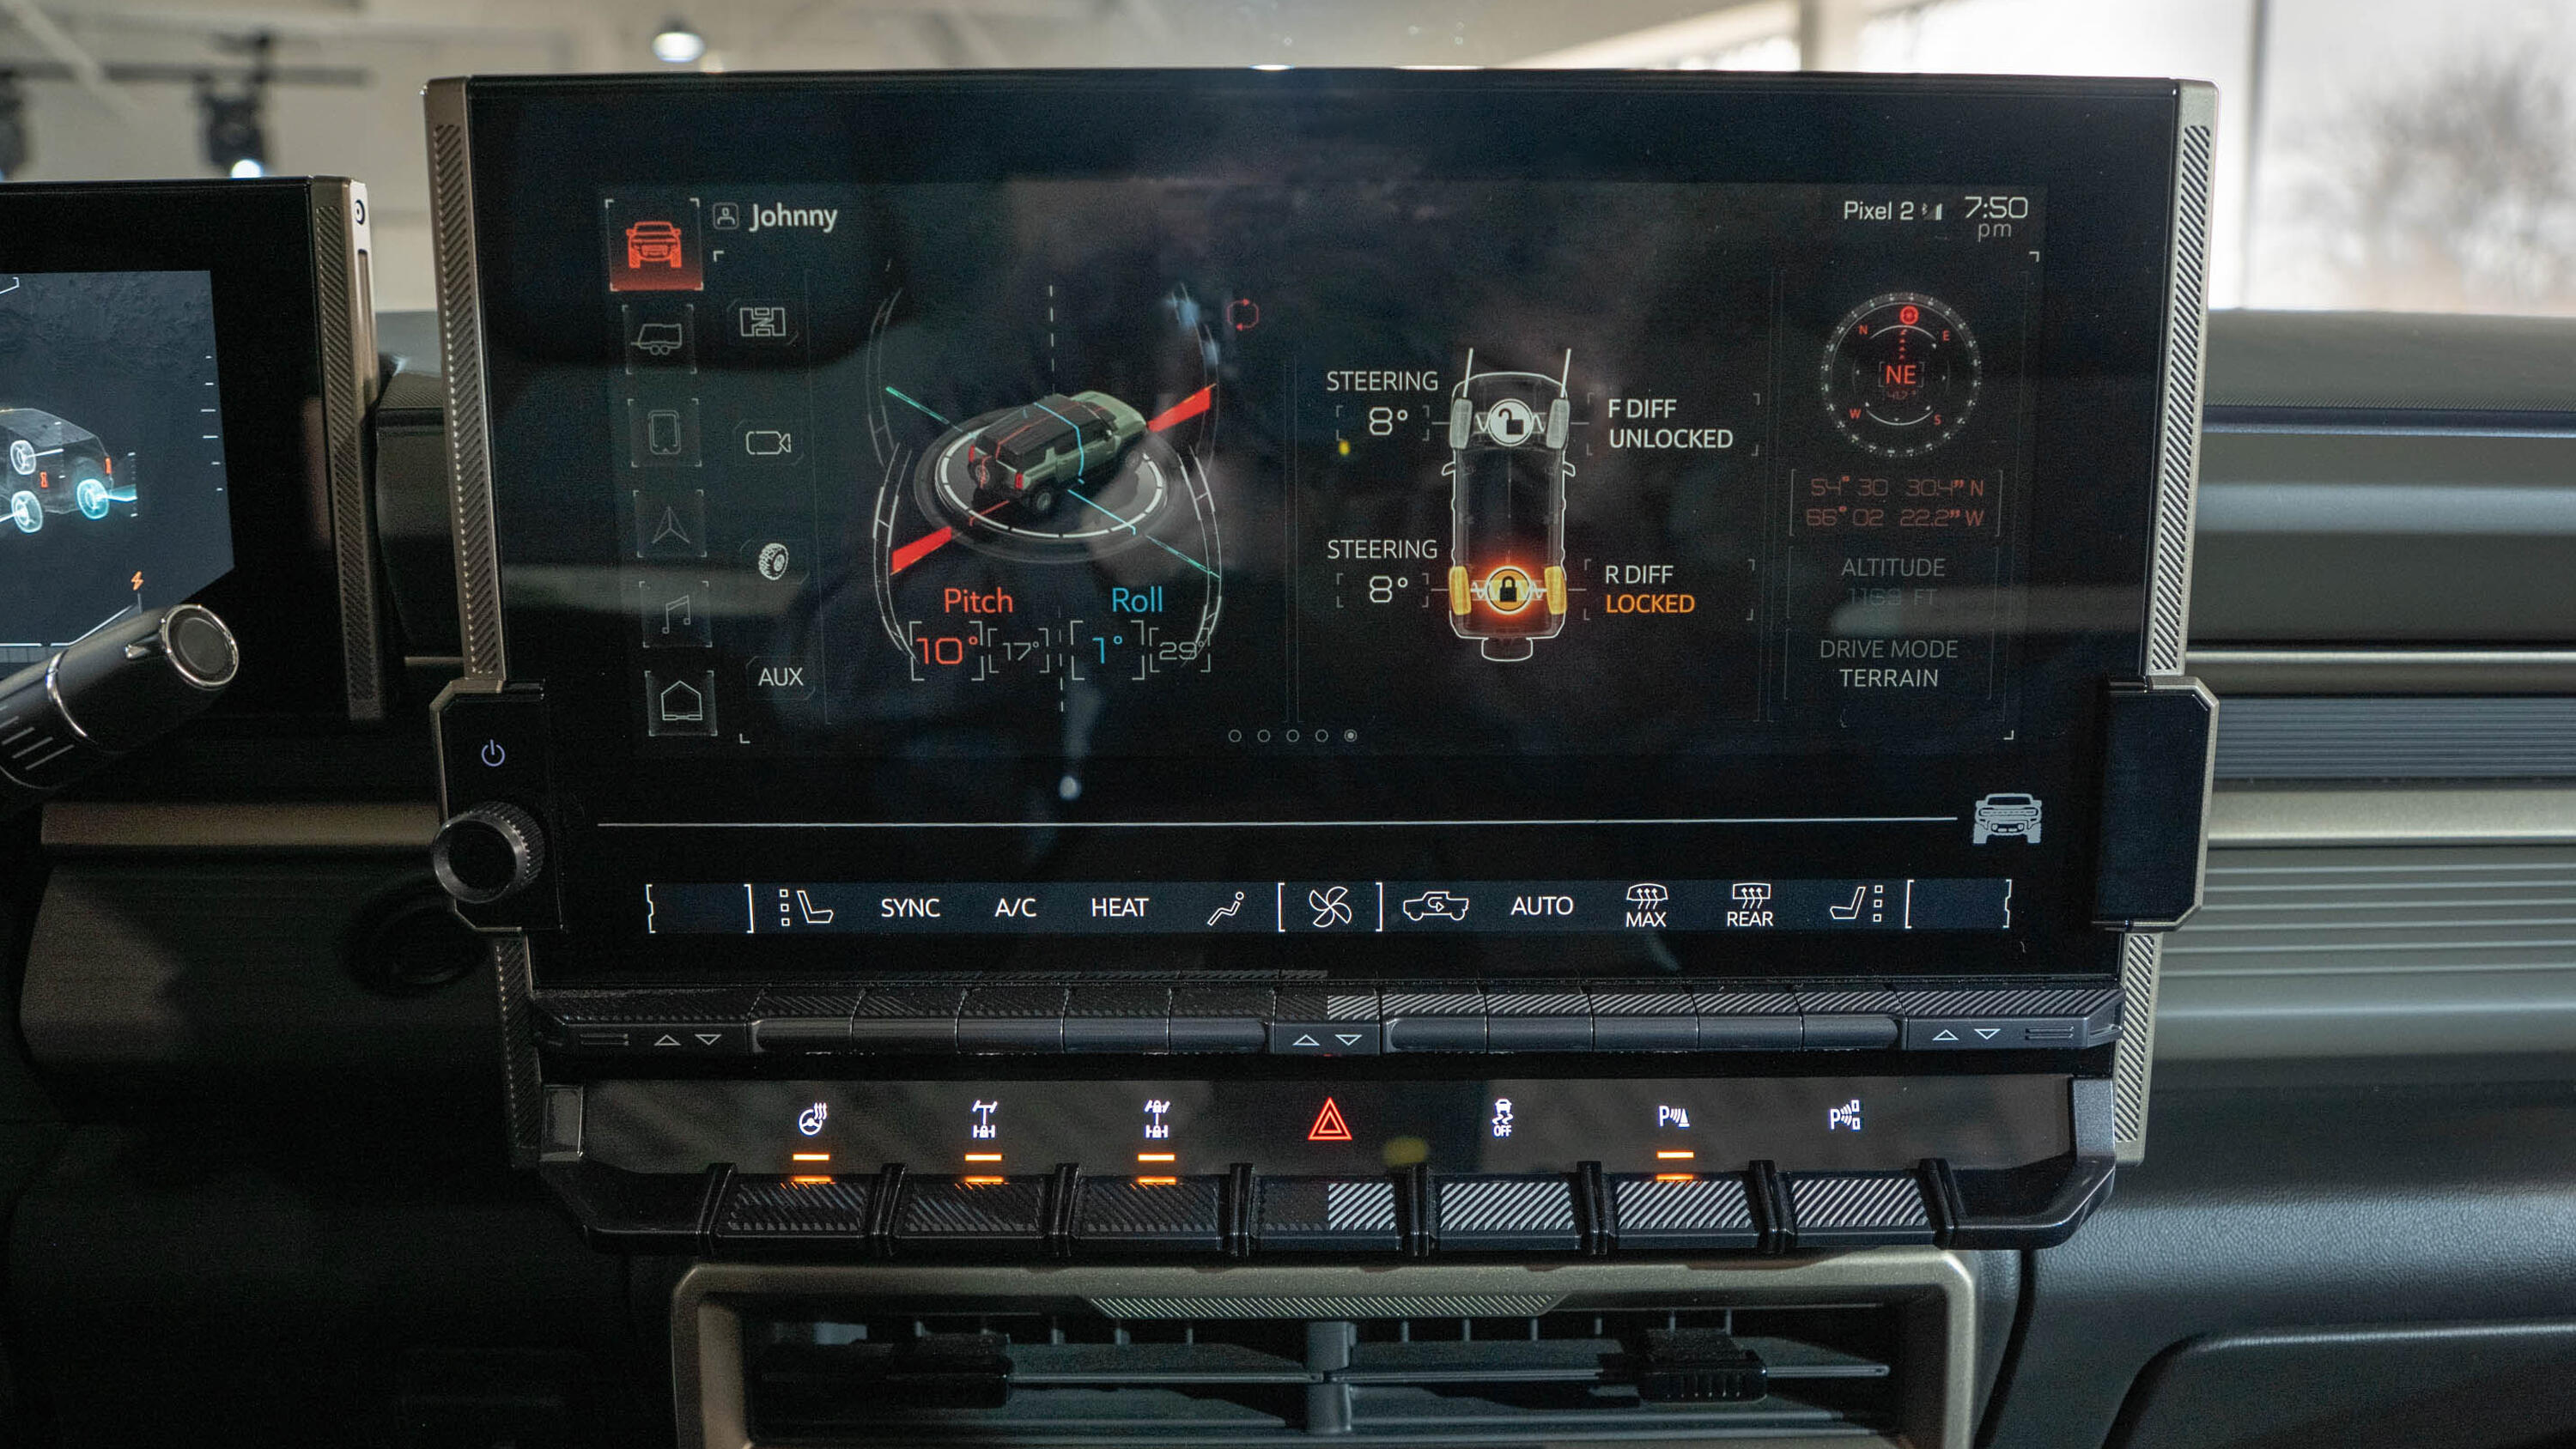 Video: How Marvel Cinematic tech influenced the GMC Hummer EV's dashboard